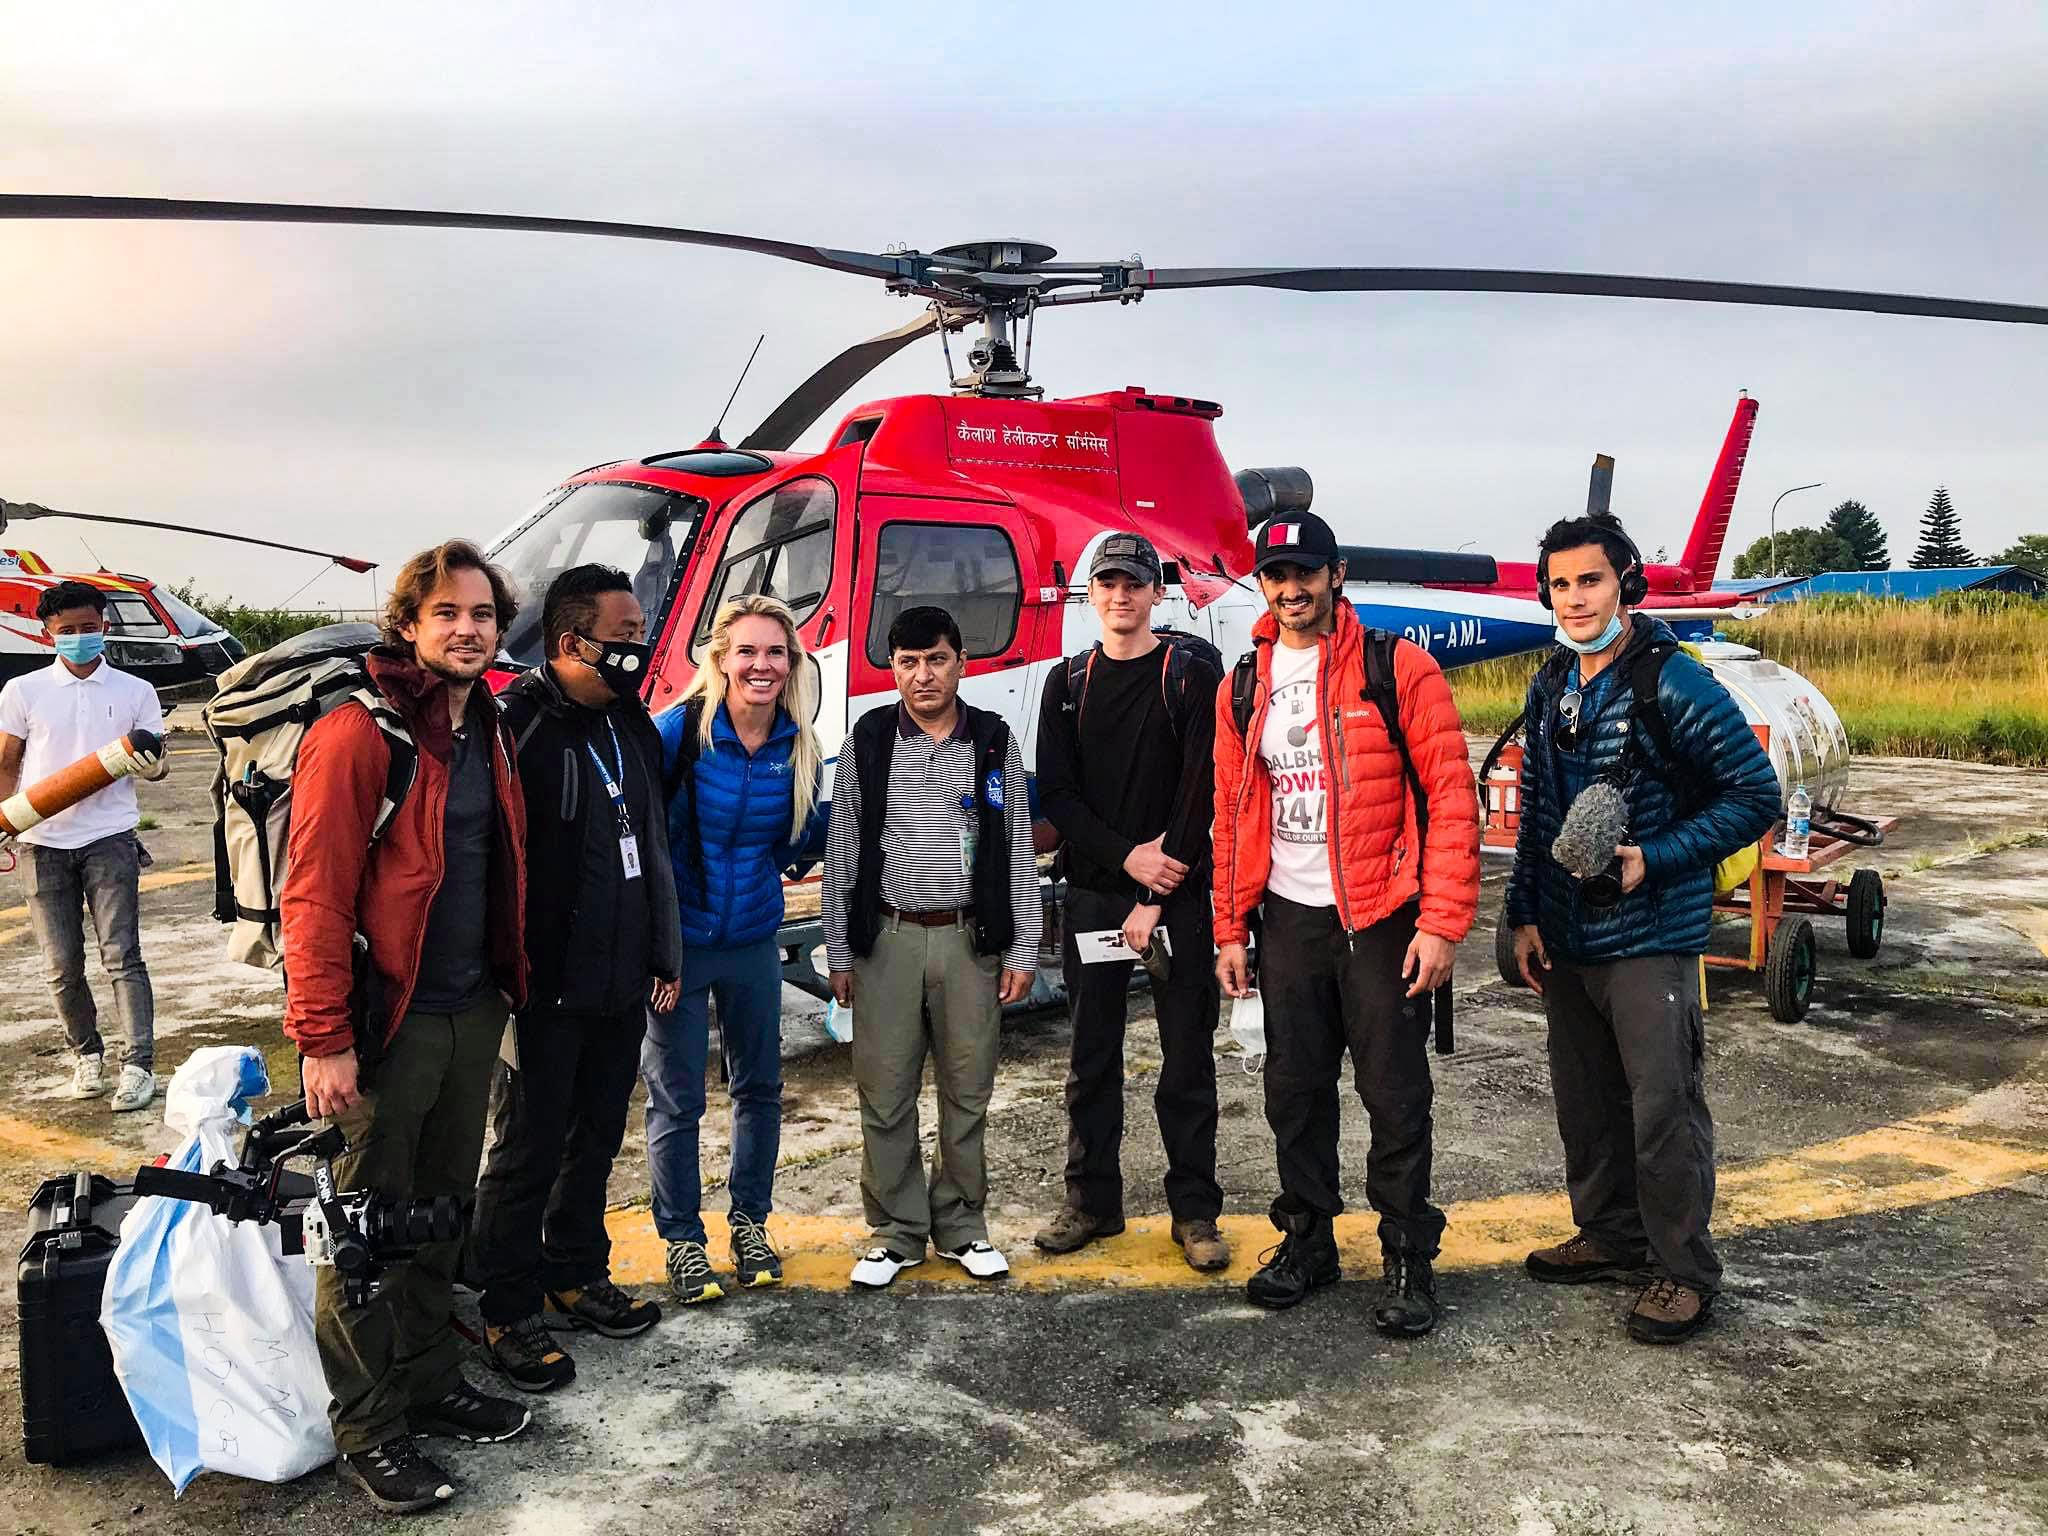 Prince of Qatar Sheikh Mohammed bin Abdulla Al Thani and his team boarding their flight with Kailash Helicopter to Lukla for an expedition of Mt Amadablam. Photo Courtesy: Kailash Helicopter